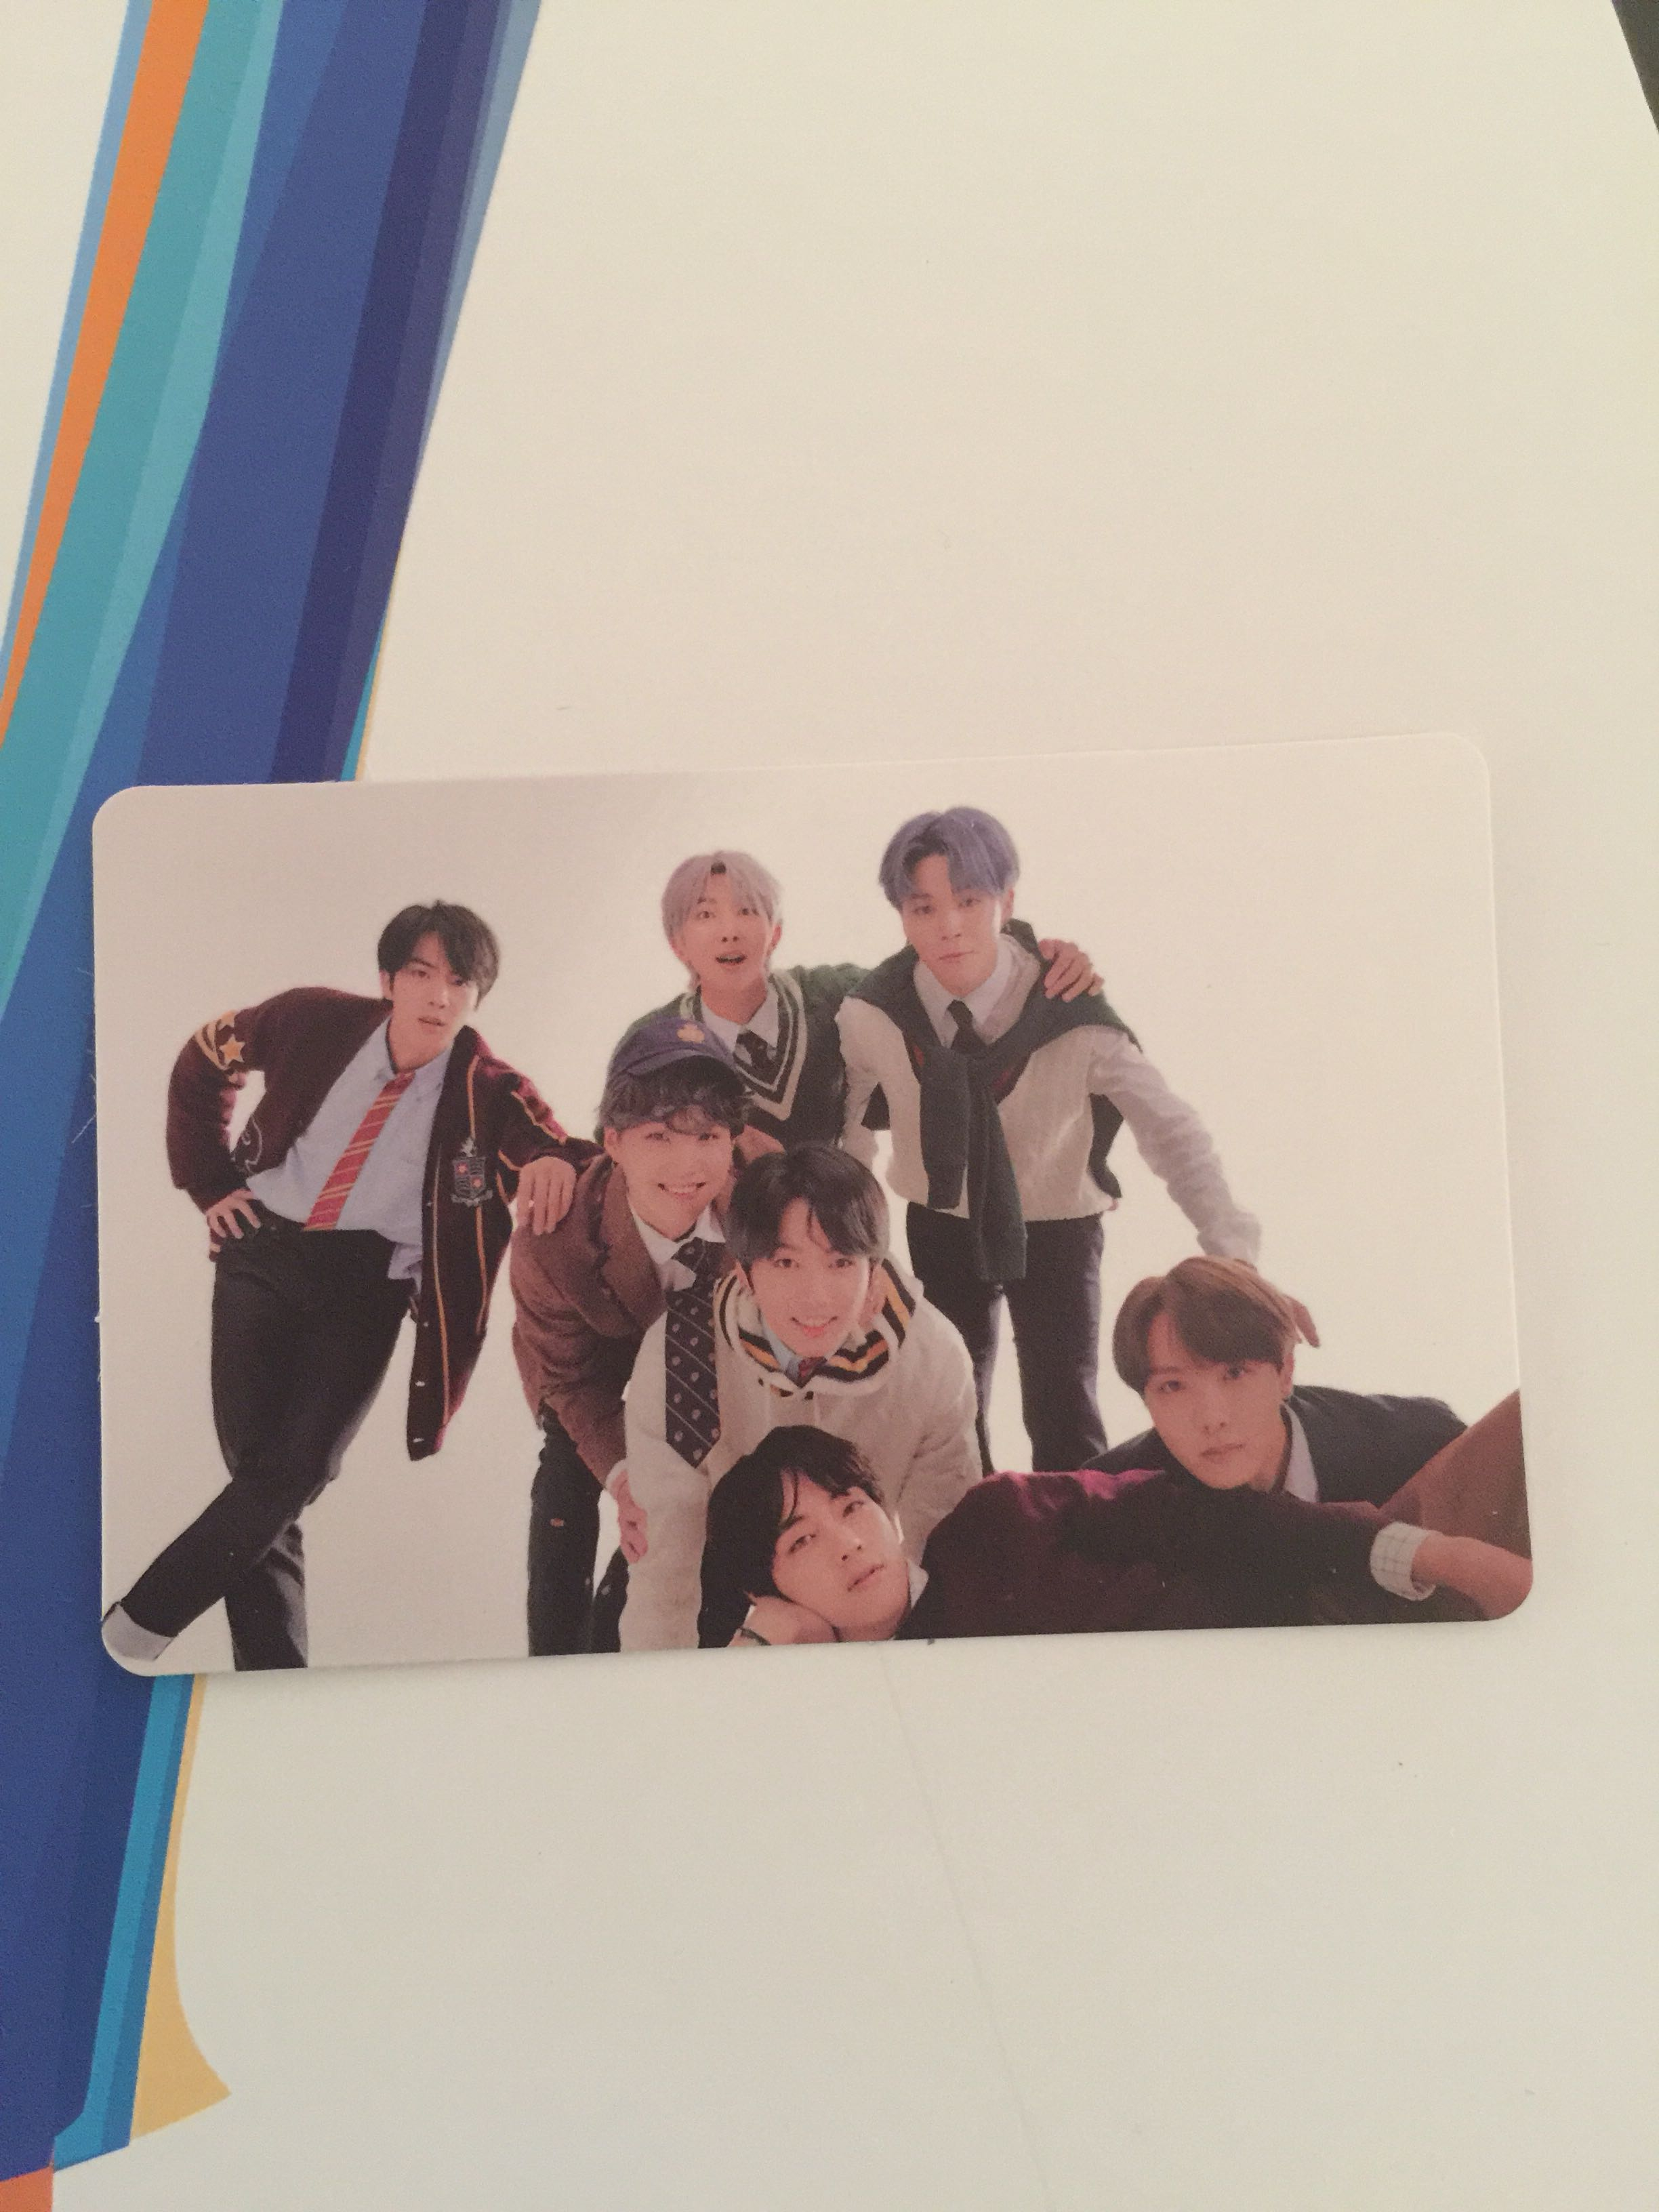 wtt bts mots 7 group photocard 1583917423 1390435a